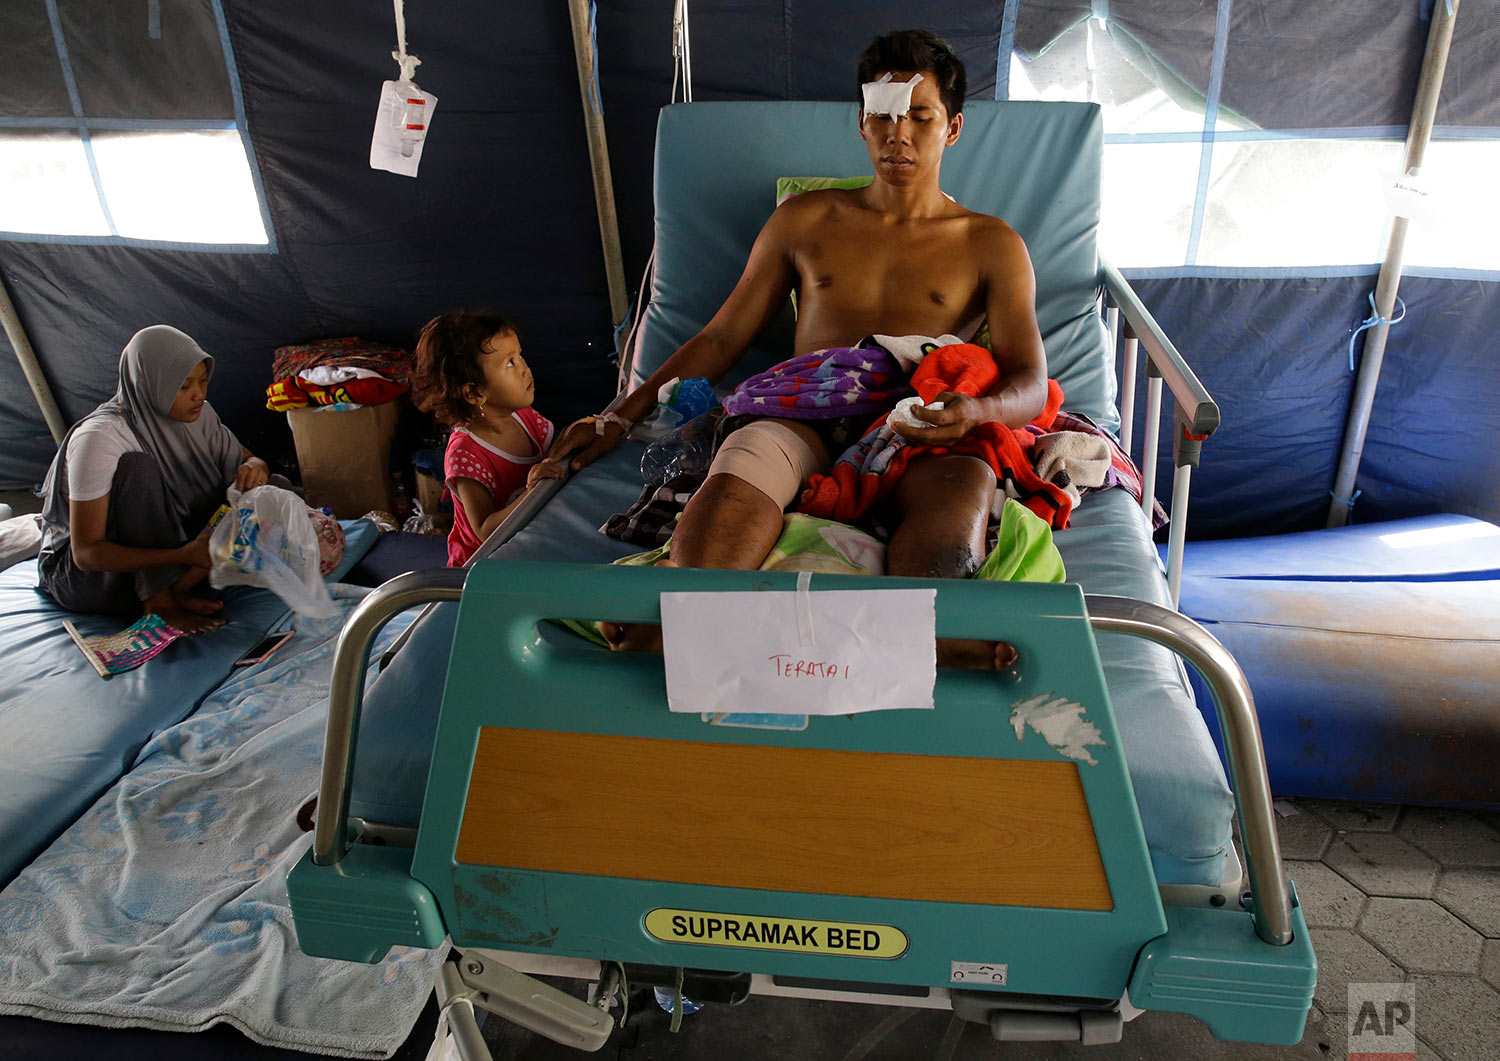 A girl looks at her injured father as he lies on a hospital bed after a massive earthquake and tsunami hit Palu, Central Sulawesi, Indonesia, Oct. 4, 2018. (AP Photo/Aaron Favila)